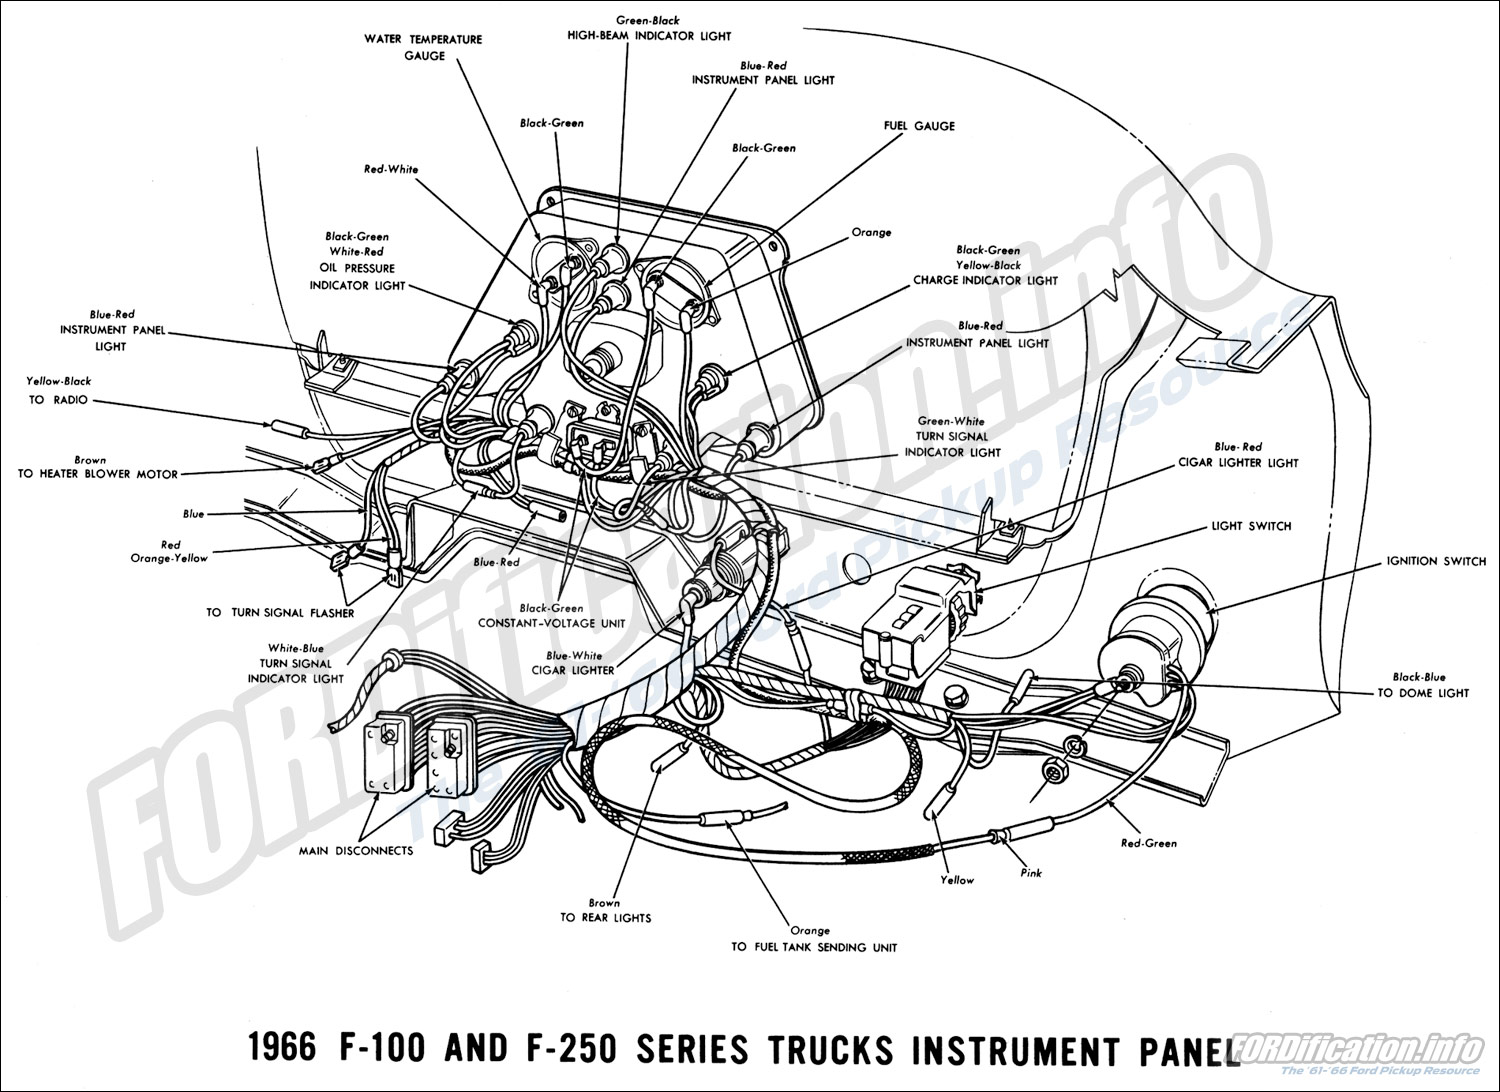 wiring diagram for 66 ford f100